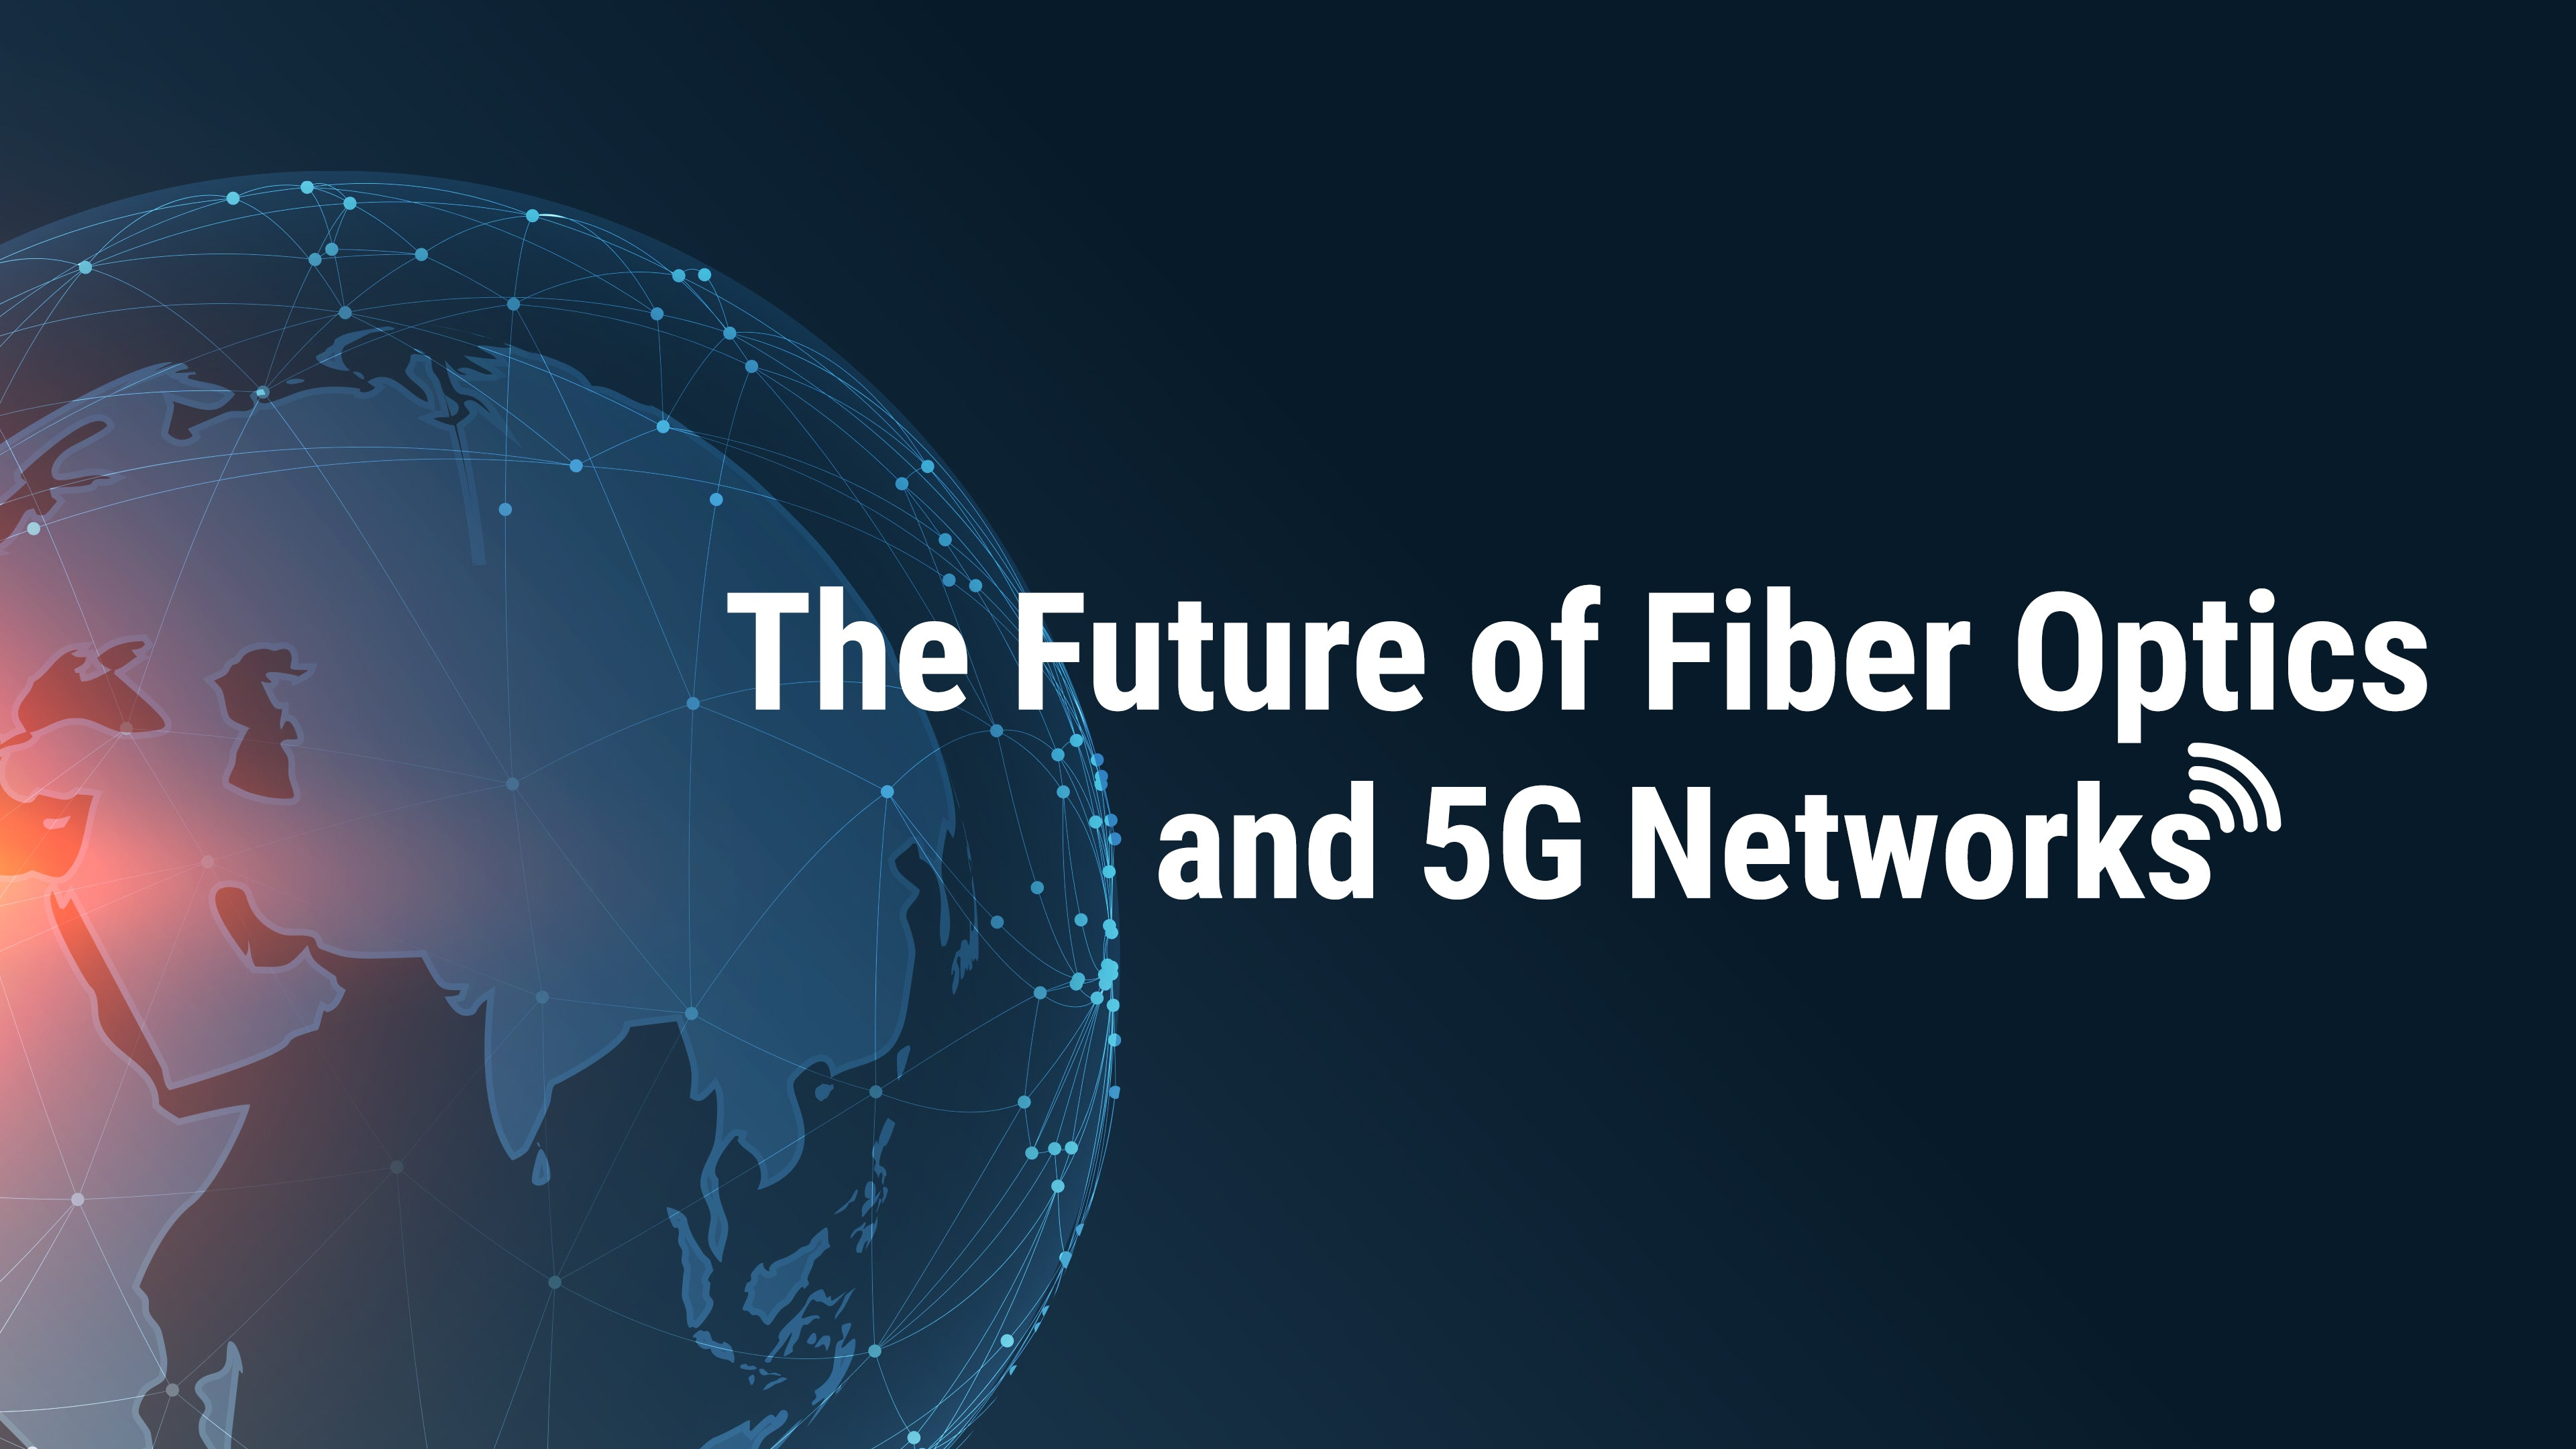 A Borderless World: The Future of Fiber Optics and 5G